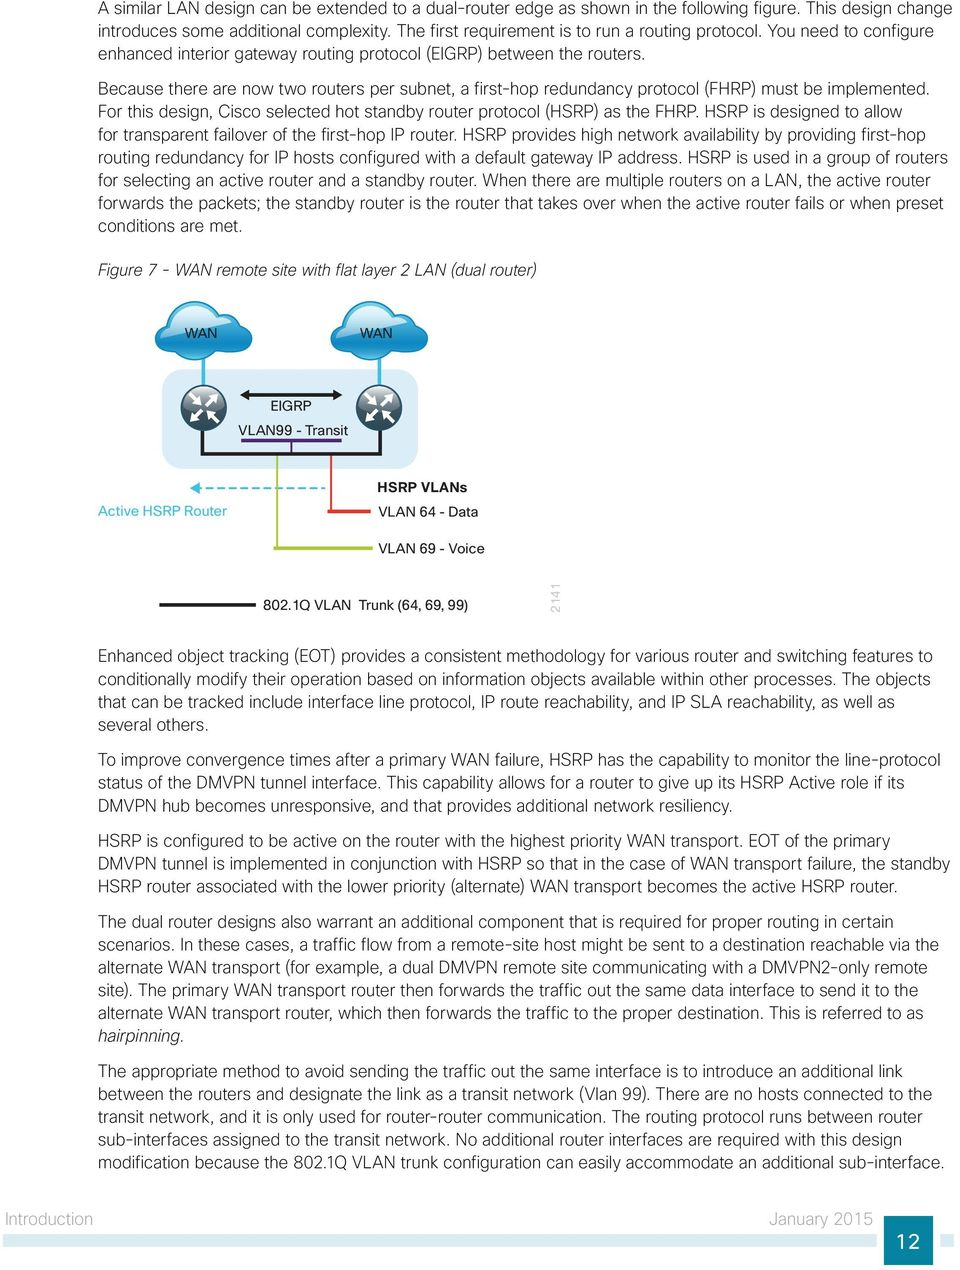 Because there are now two routers per subnet, a first-hop redundancy protocol (FHRP) must be implemented. For this design, Cisco selected hot standby router protocol (HSRP) as the FHRP.